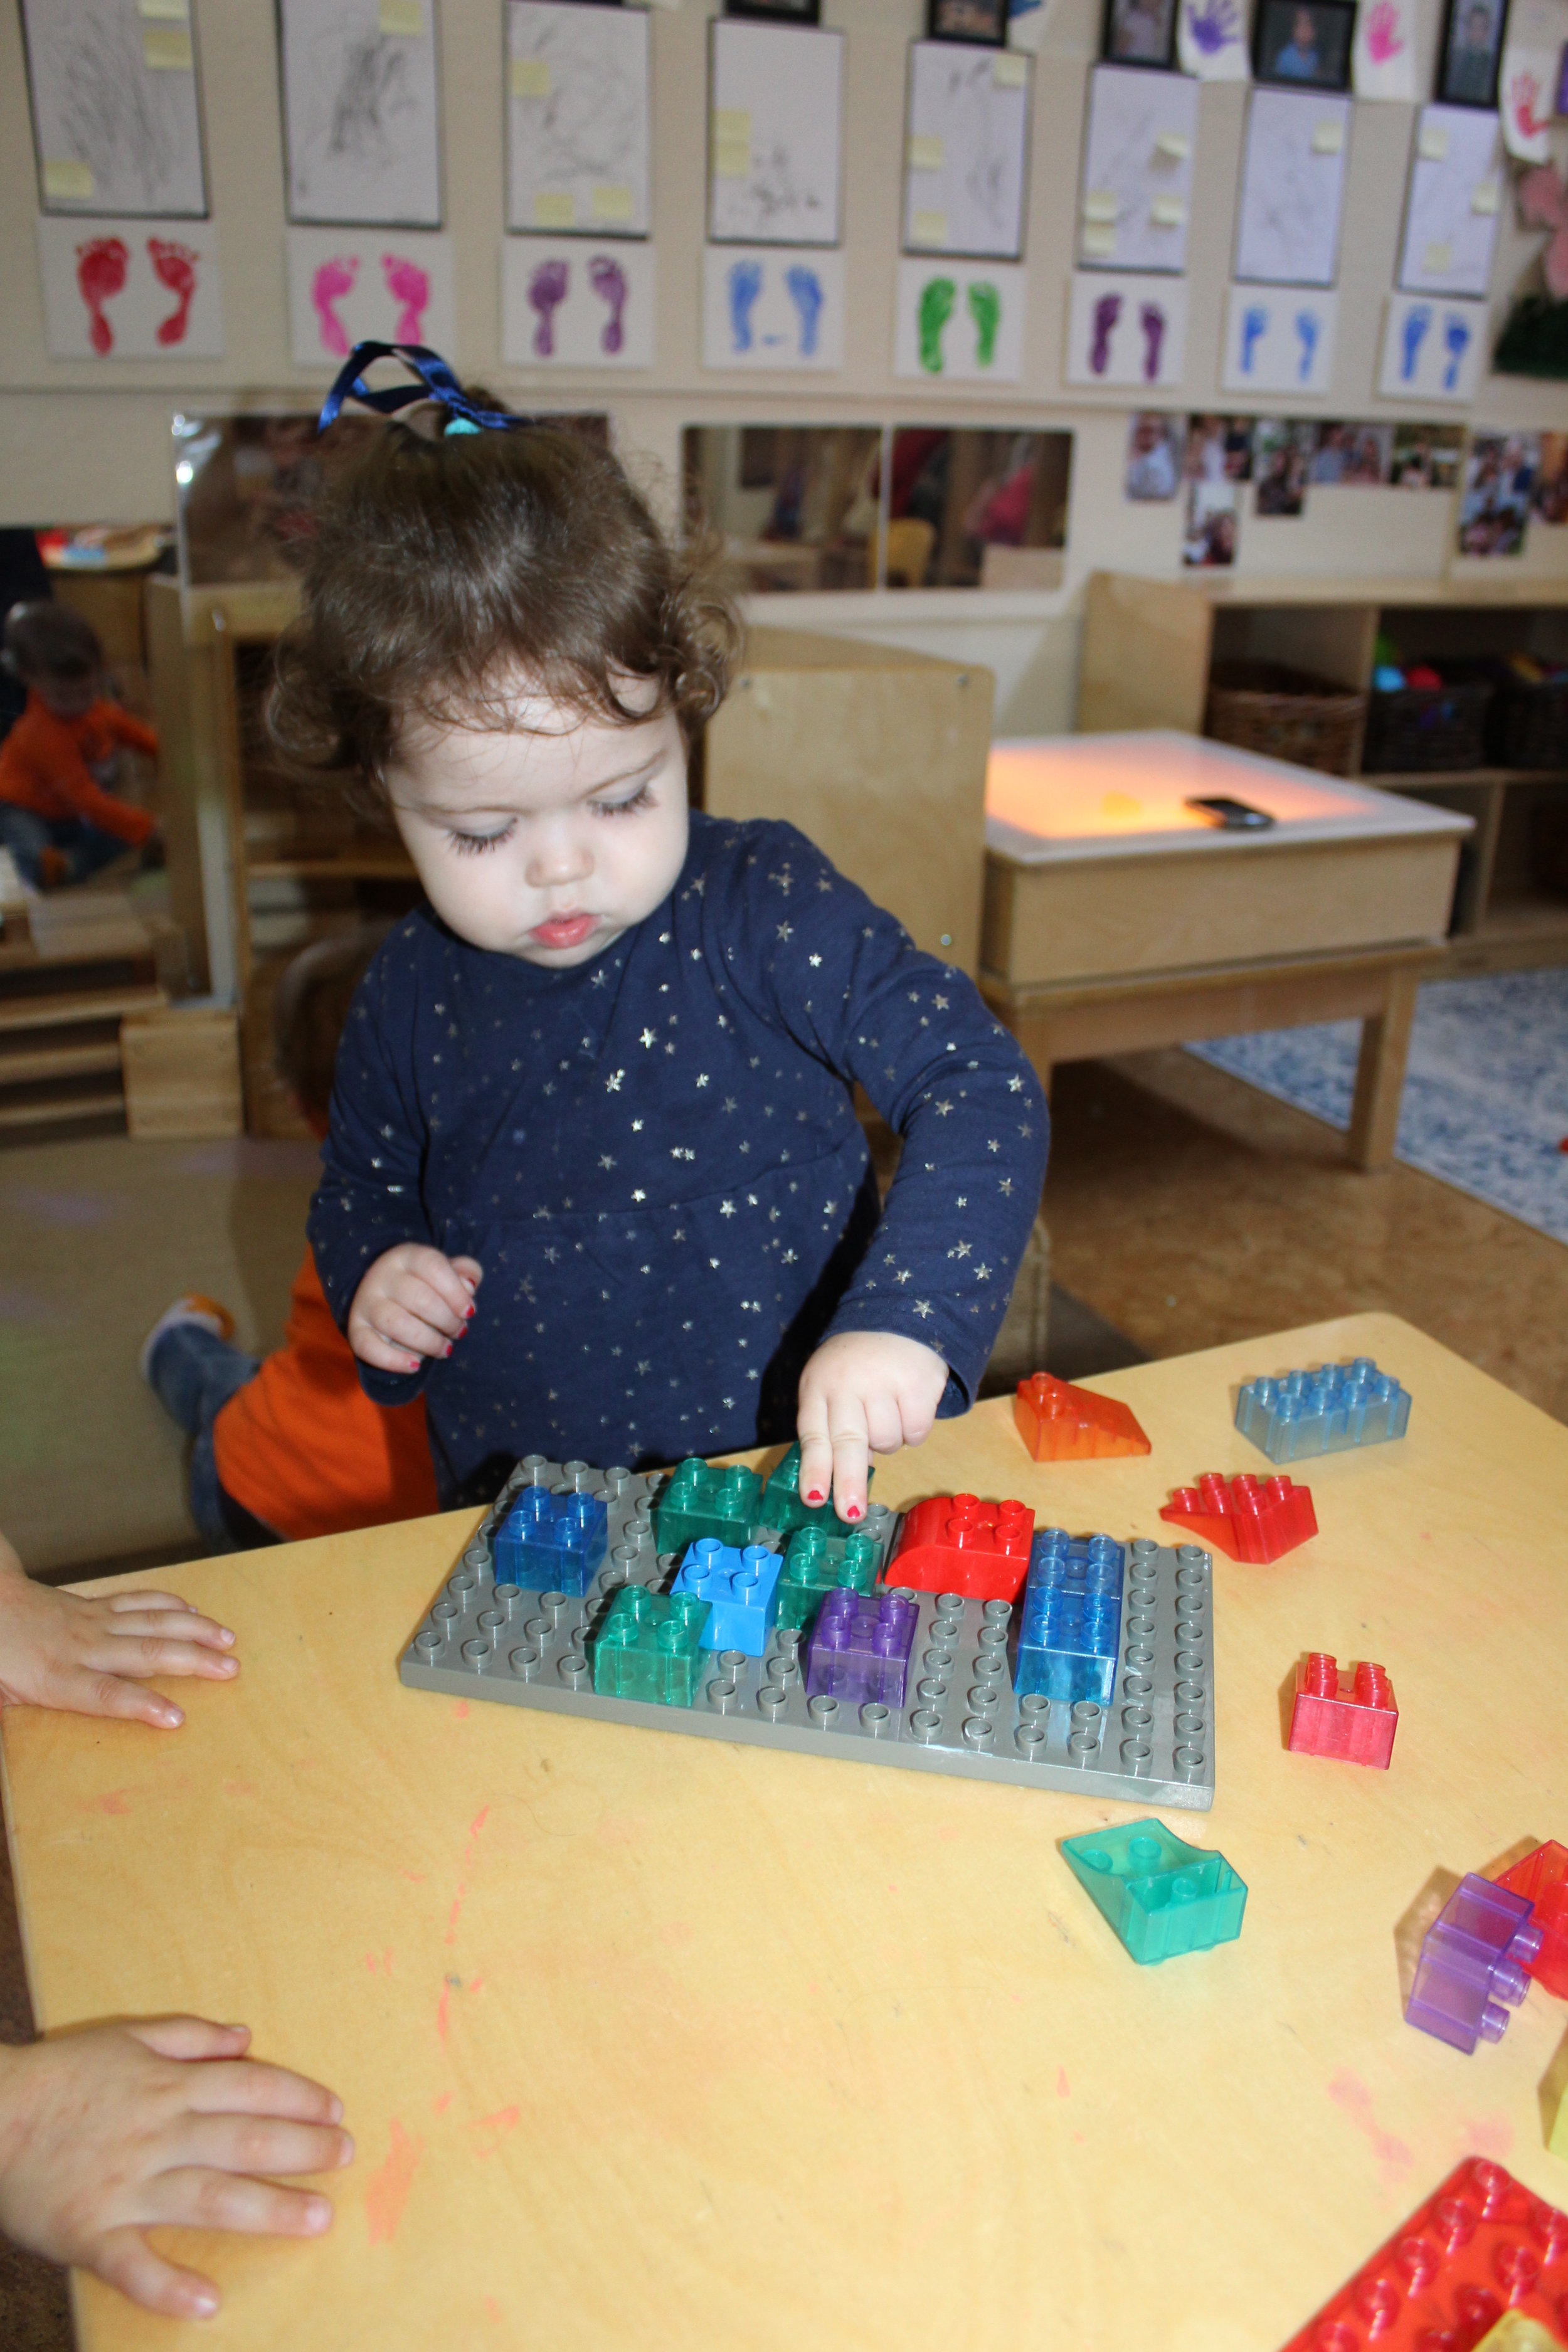 The Lego blocks and plates displayed on the table,Edie observed and interacted with them.She pressed one square shape onto the Lego plate and continued selecting different color squares unto the plate until it is almost complete. Experimenting and investigating each piece she chooses and rotates to design, helps her create her structure.